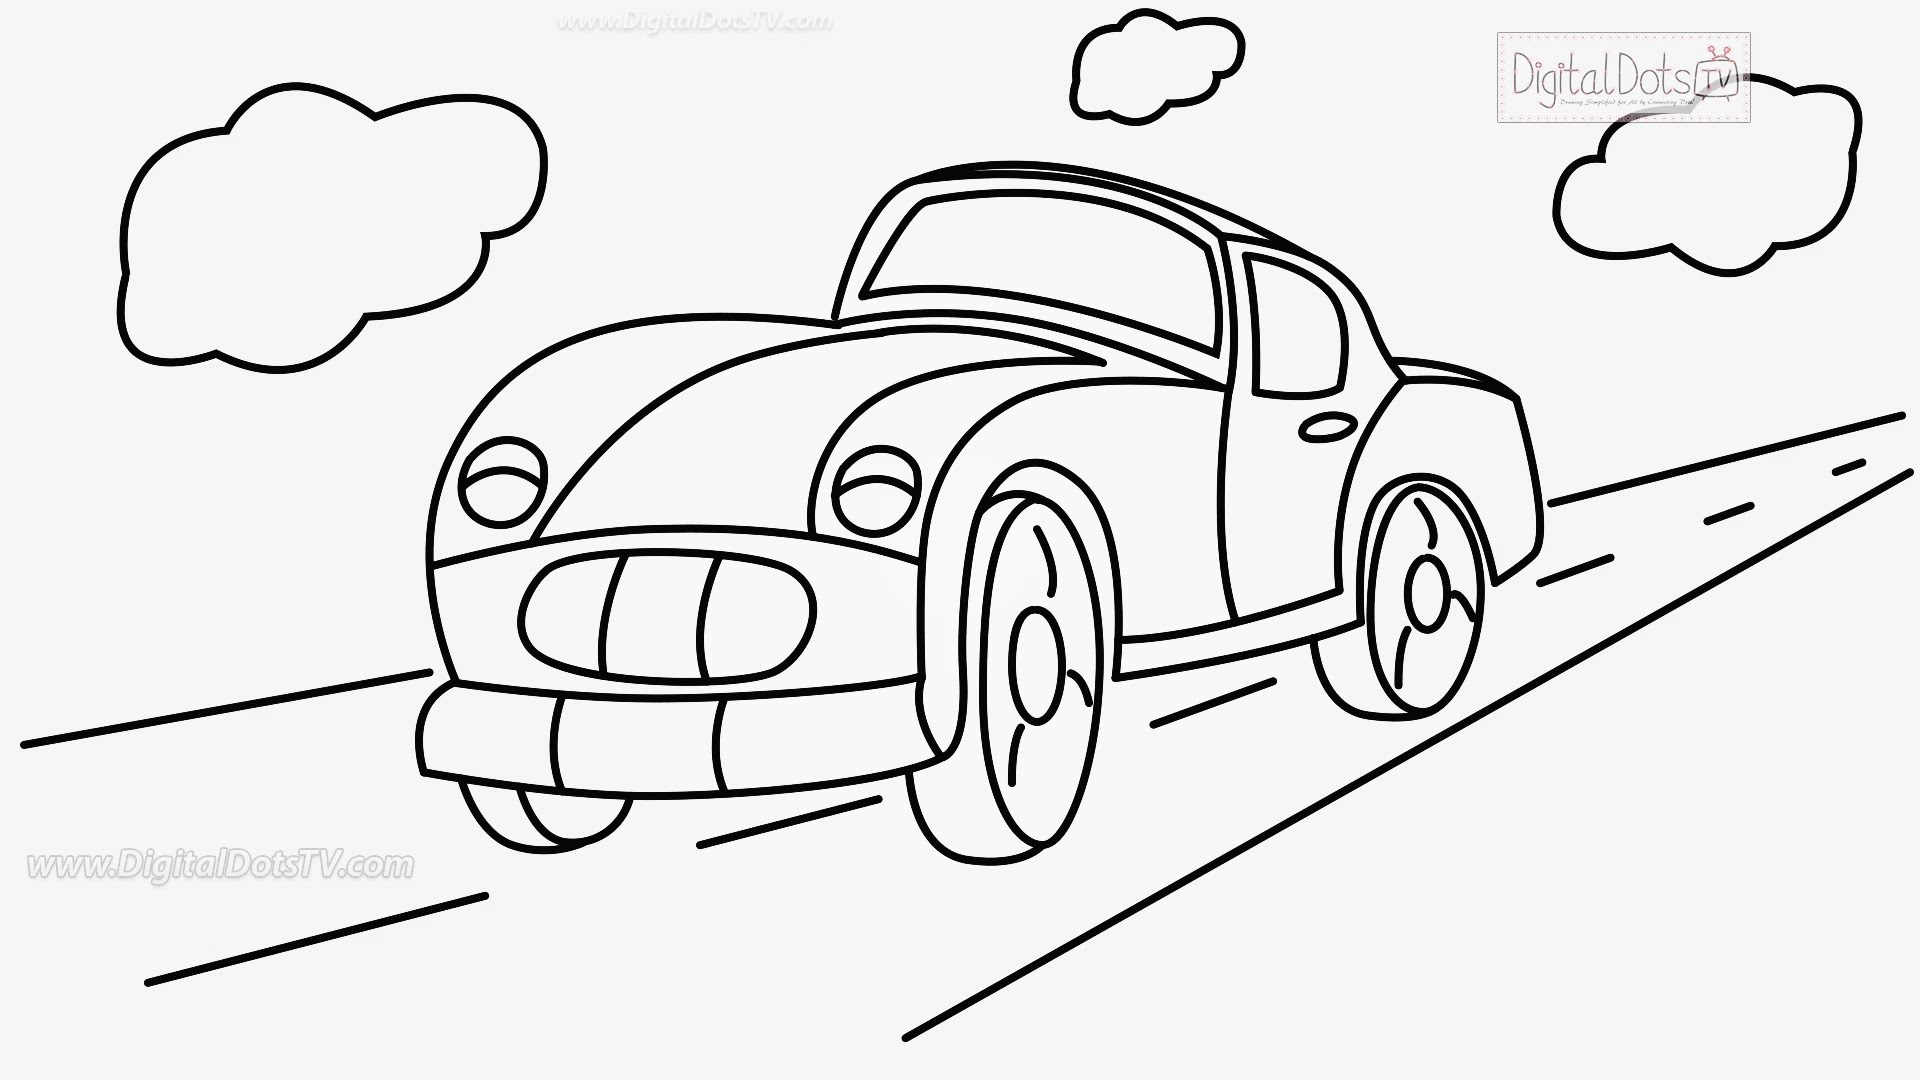 Drawn vehicle caricature Step Step to Car Step